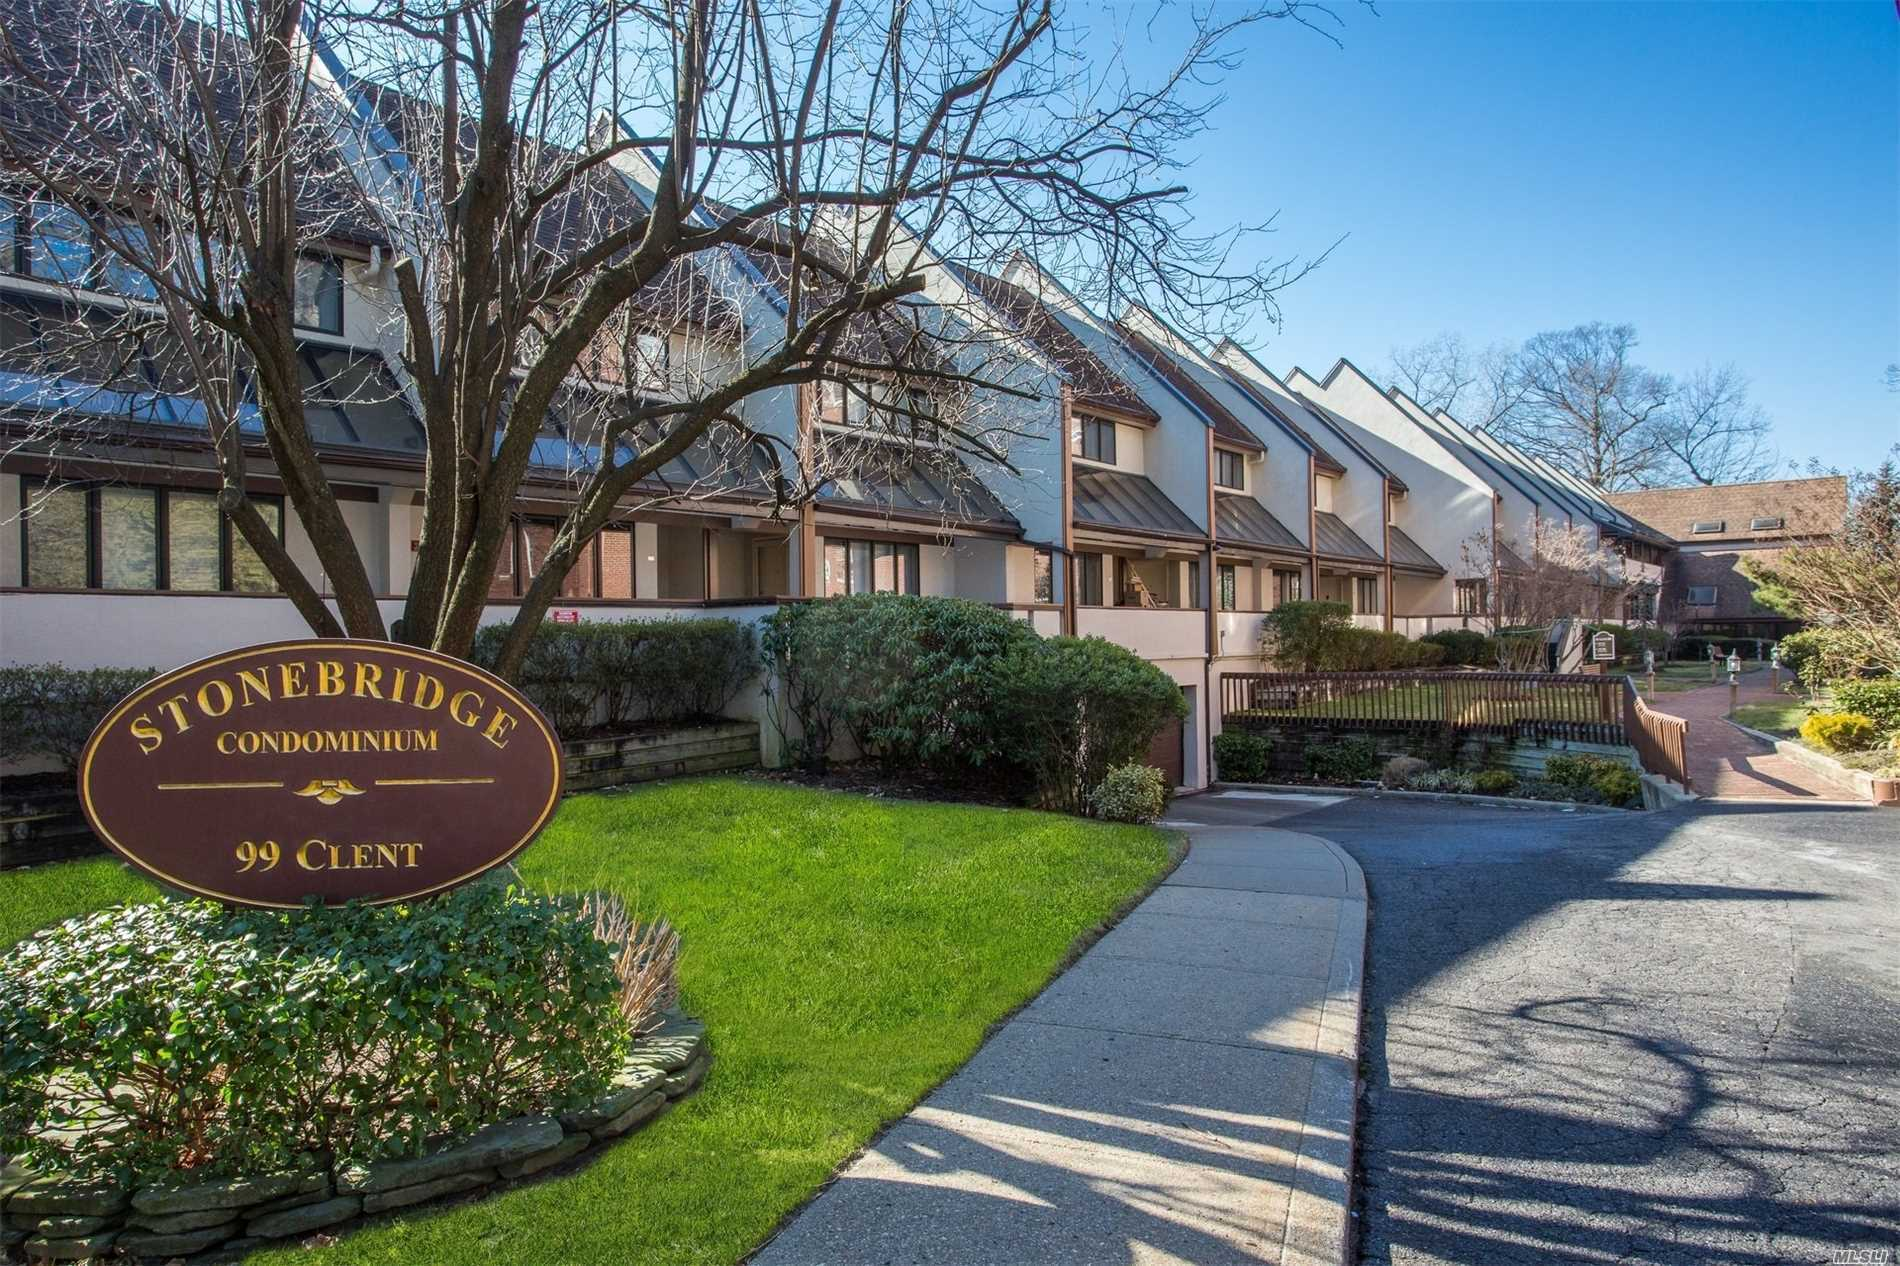 Property for sale at 99 Clent Road # B105, Great Neck NY 11021, Great Neck,  New York 11021